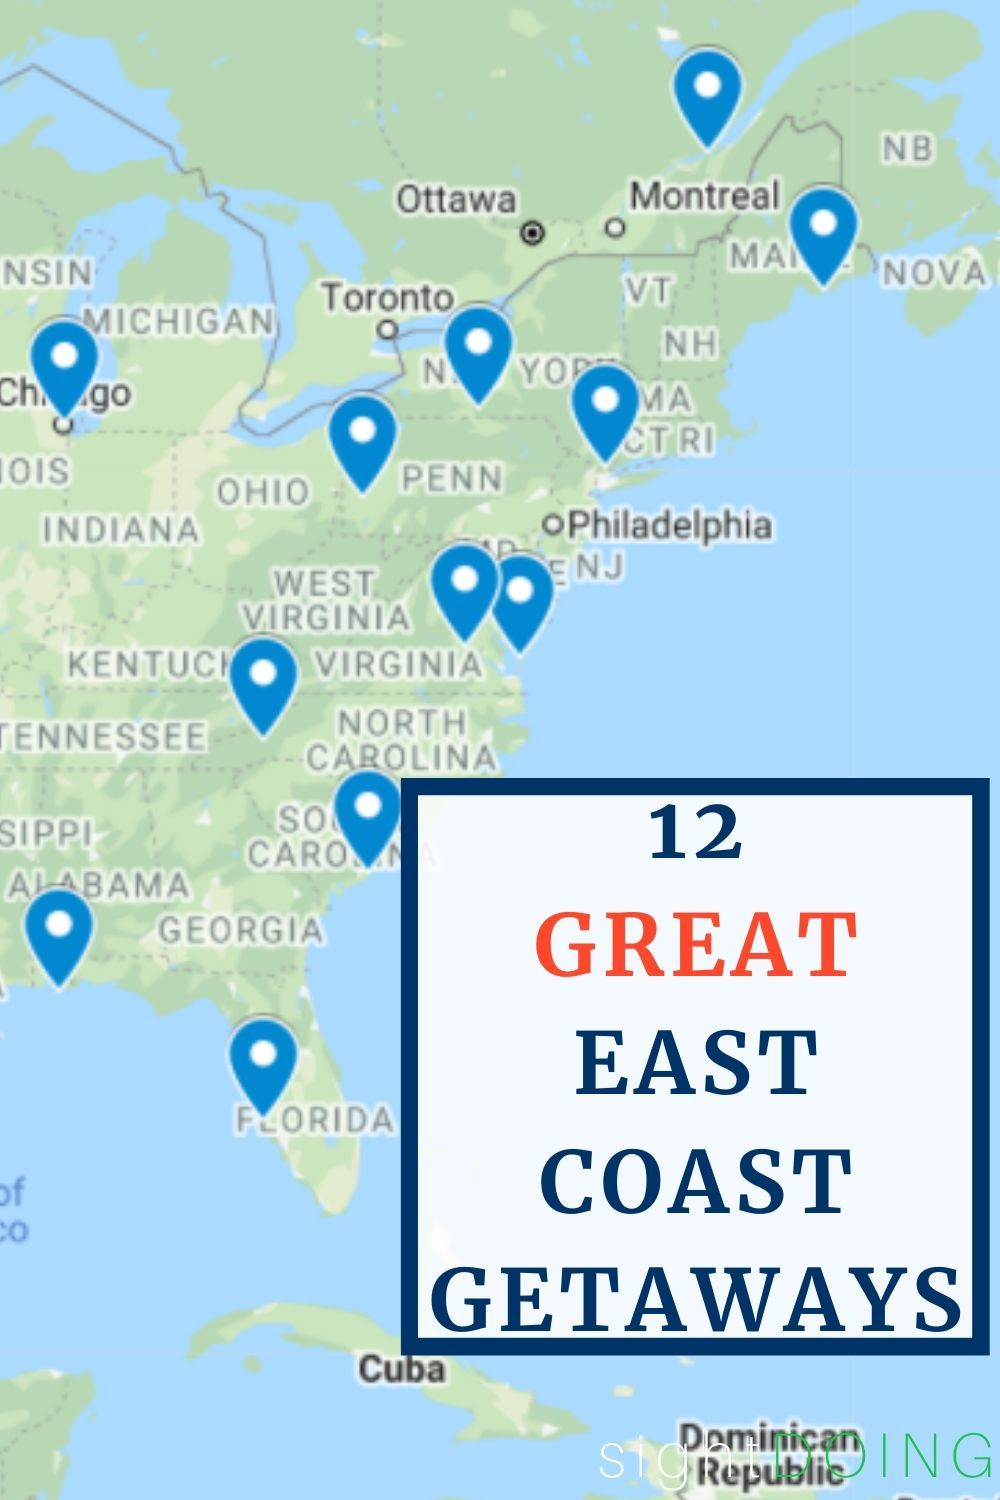 weekend getaways east coast map